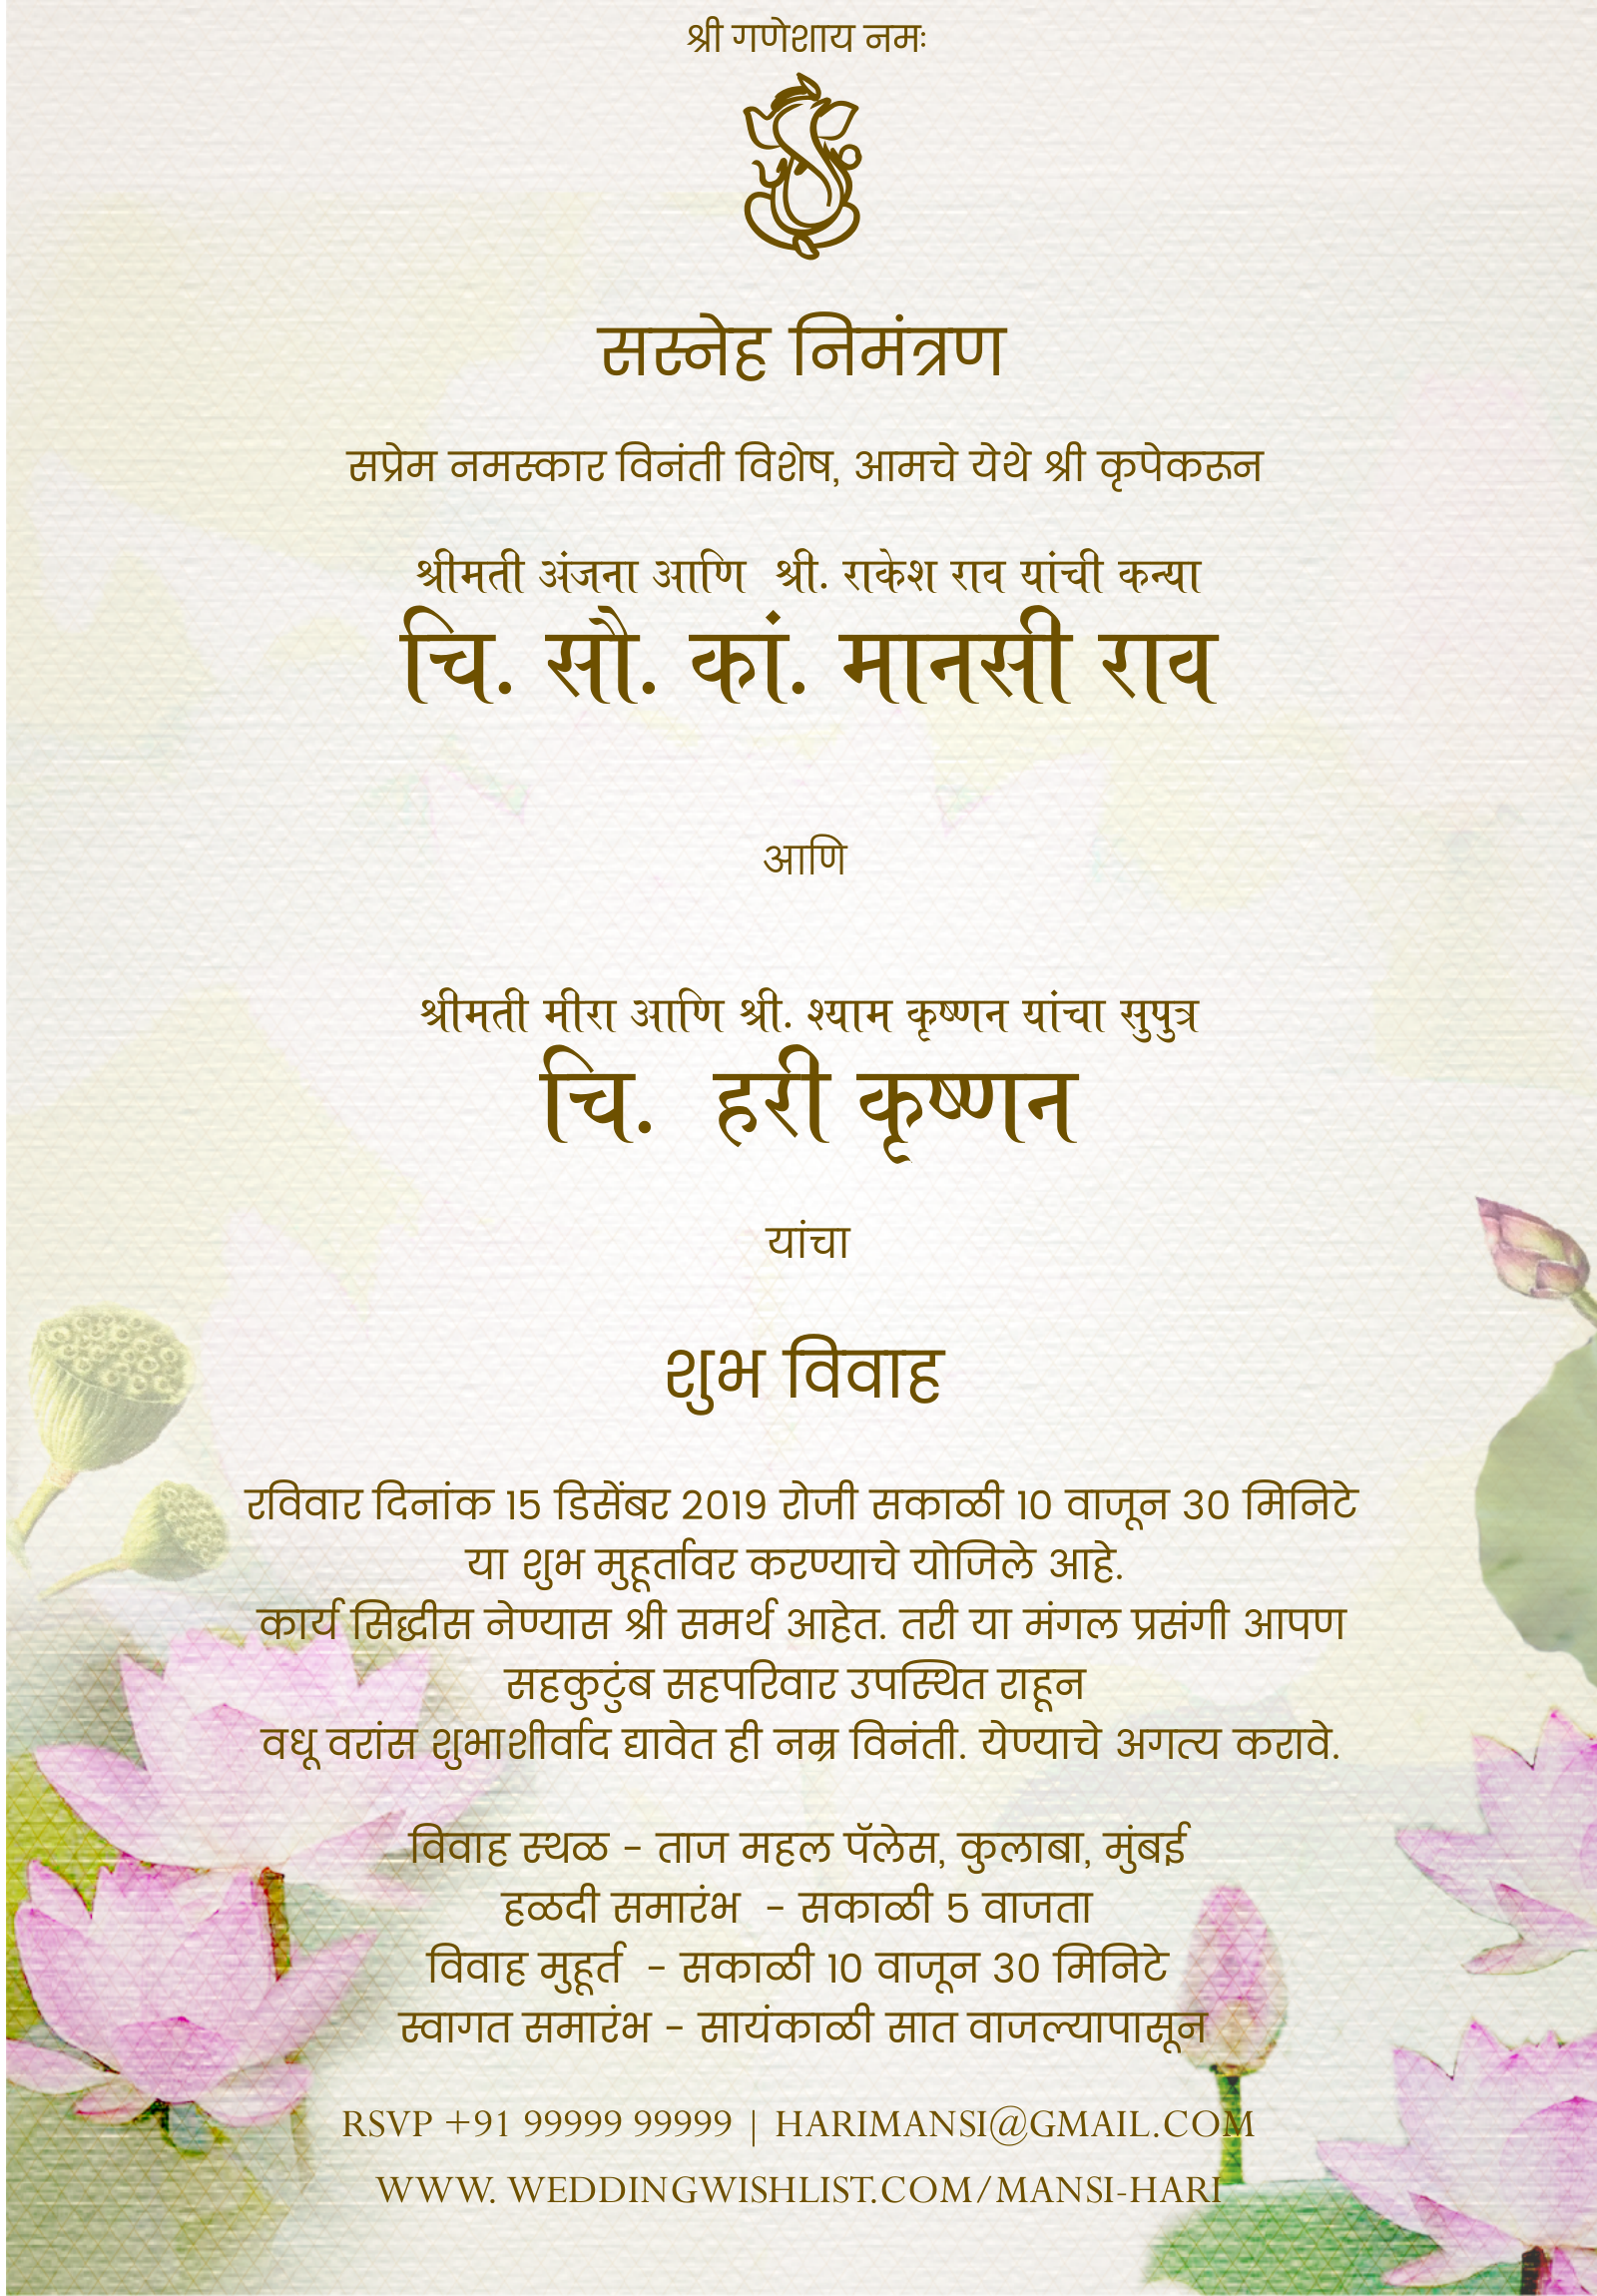 Lotus Blossoms Indian Wedding Invitation Cards Wedding Invitation Cards Online Marriage Invitation Card